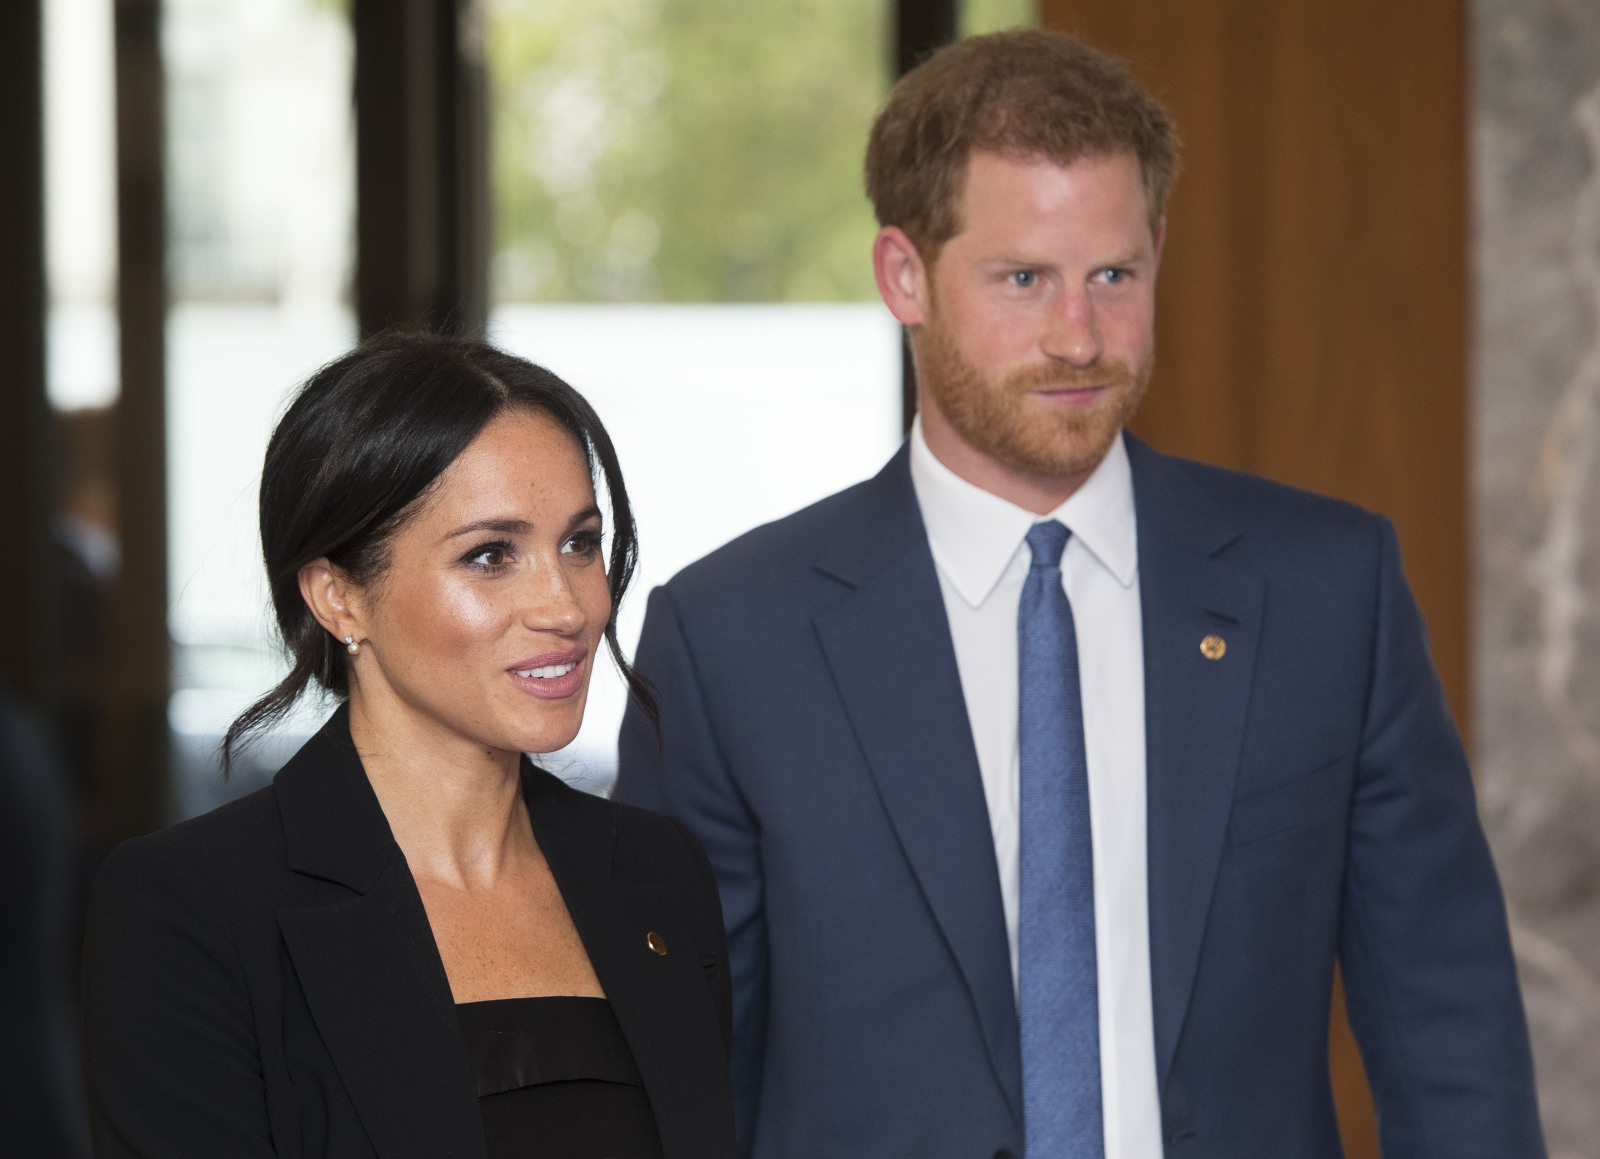 The Duke and Duchess of Sussex at the annual WellChild Awards at the Royal Lancaster Hotel in London.